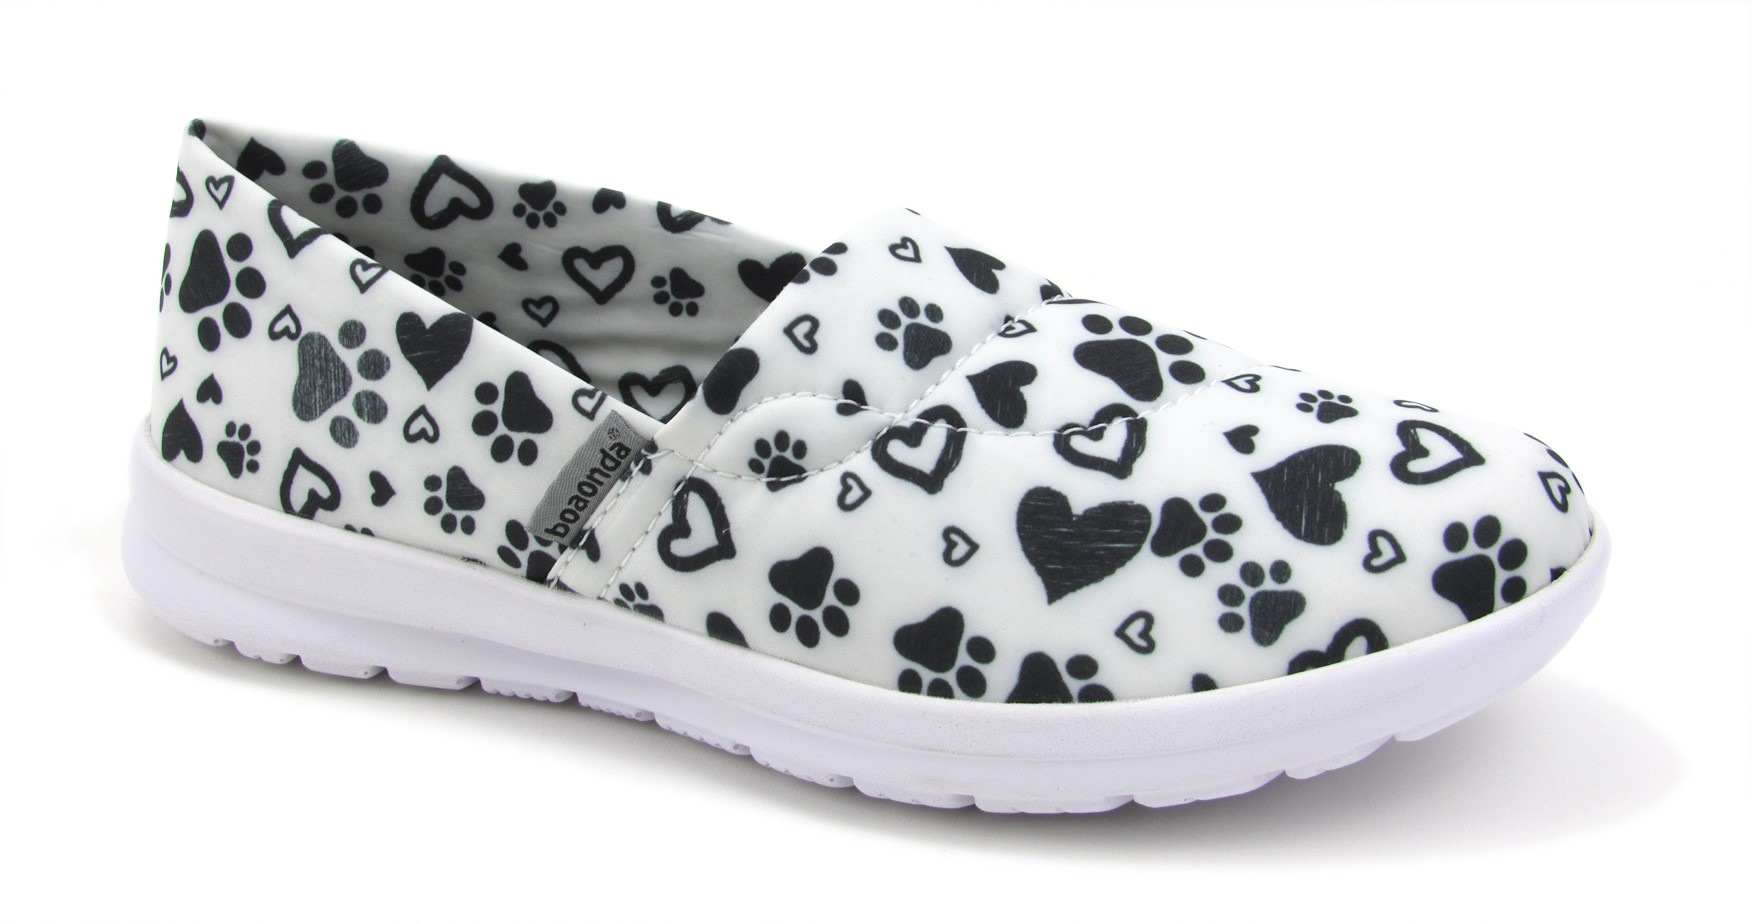 Florence Ocean - Paws and Hearts - White and Black